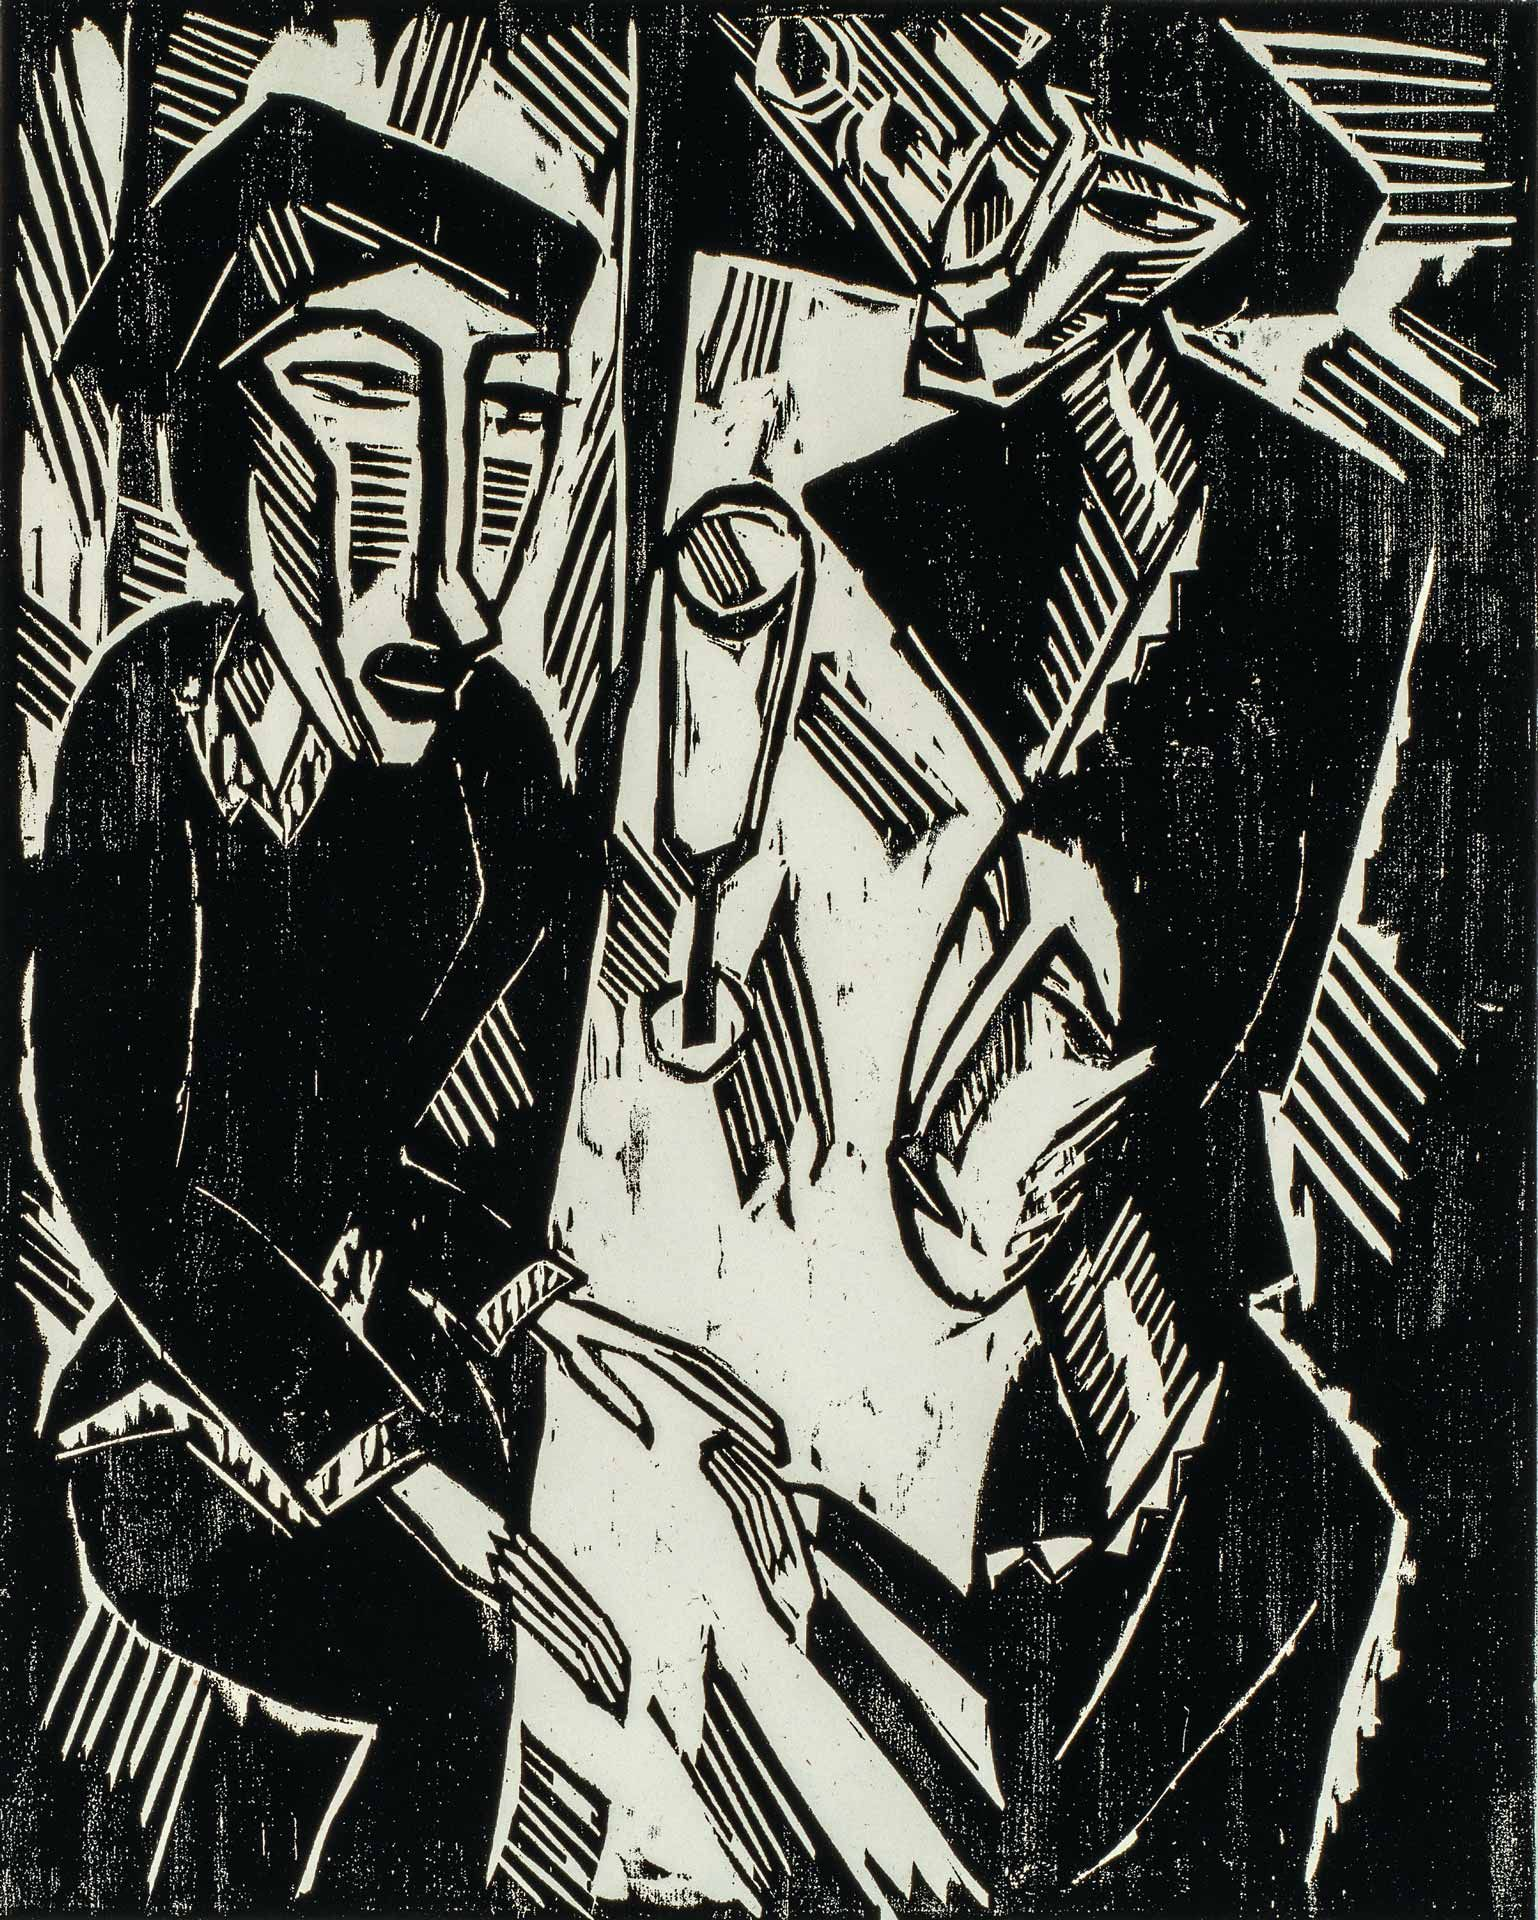 Karl Schmidt-Rottluff (1884-1976), Three People at a Table, 1914, woodcut, only state. MMFA, purchase, the Museum Campaign 1988-1993 Fund. © Estate of Karl Schmidt-Rottluff / SOCAN (2020)